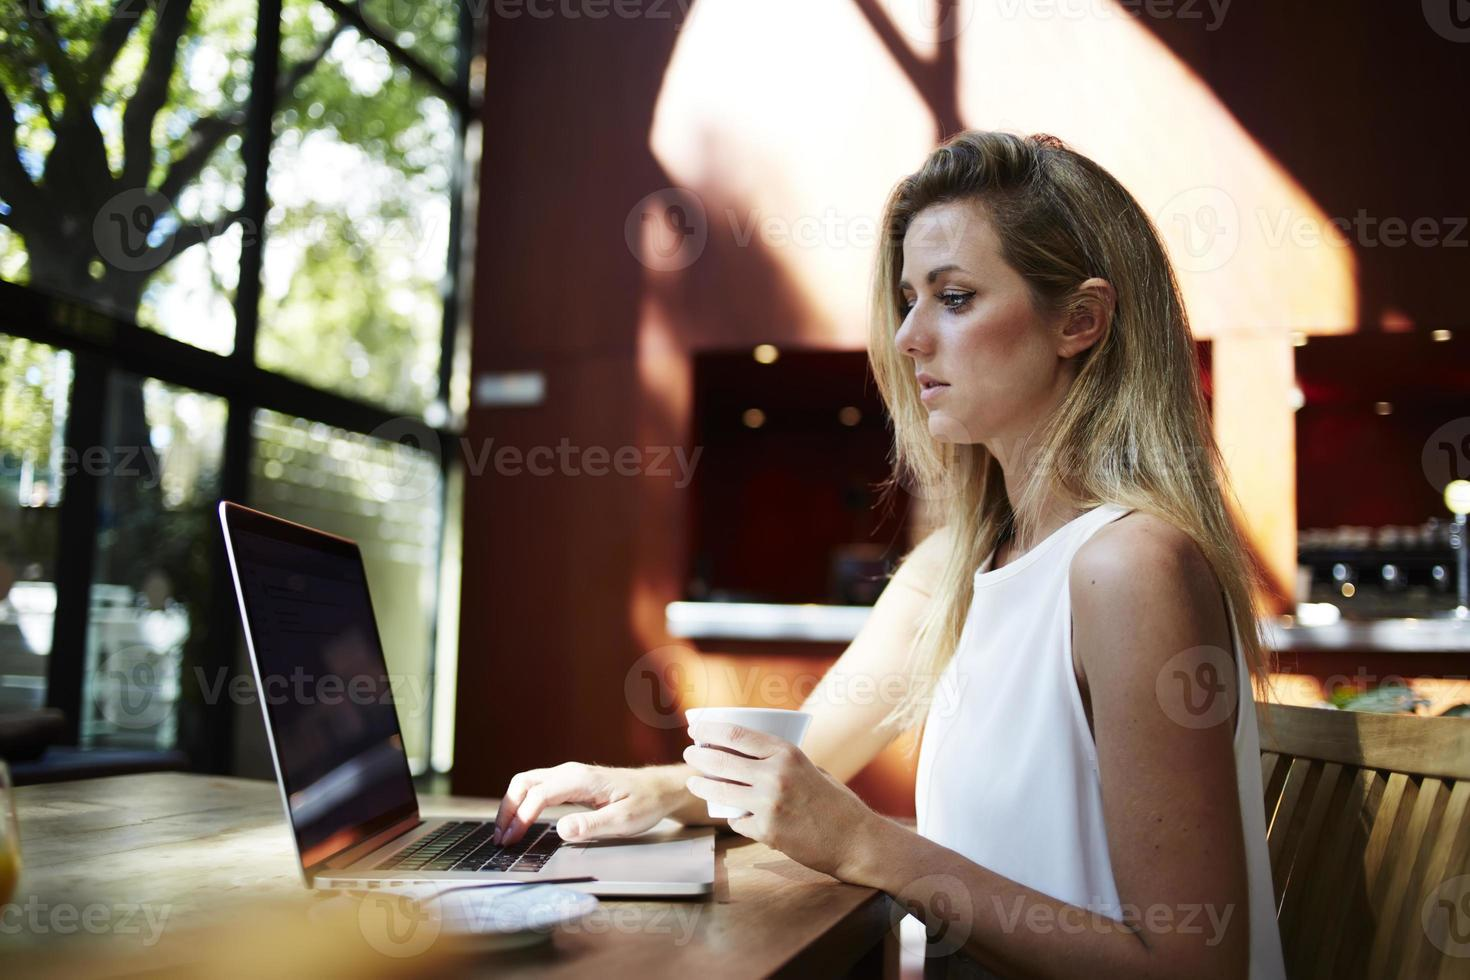 Woman holding cup of coffee while reading text on net-book photo